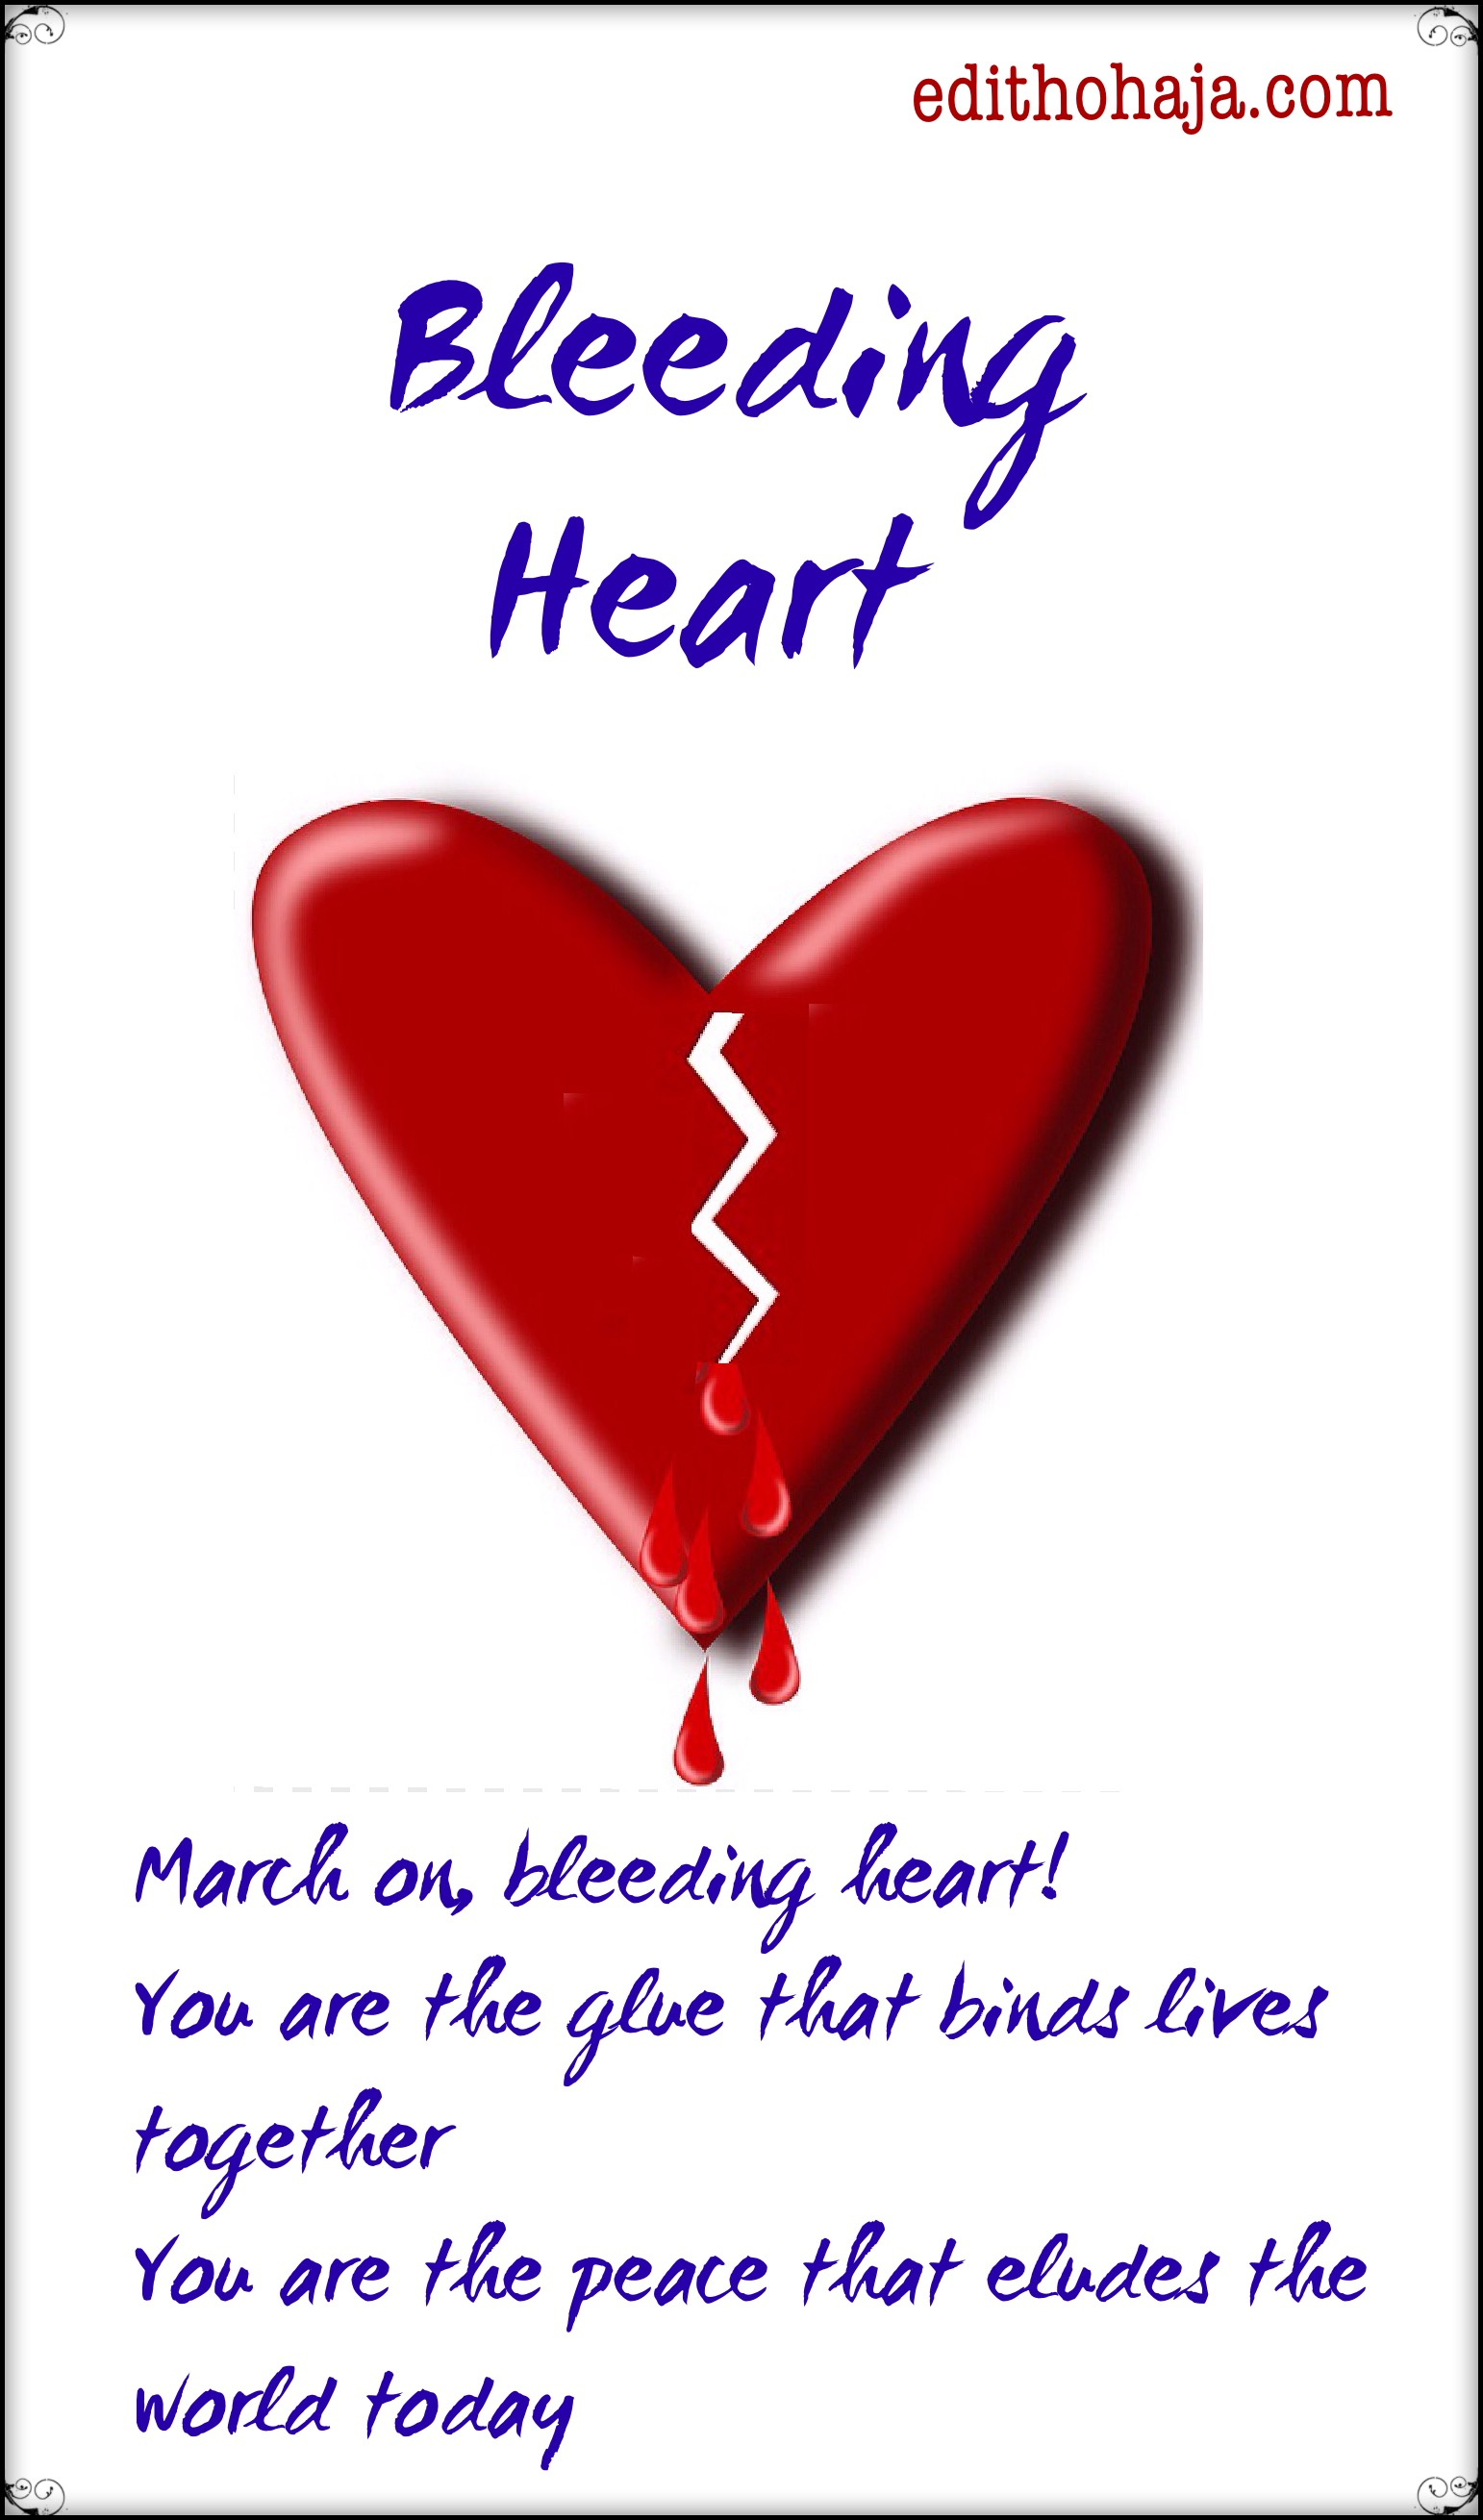 BLEEDING HEART (POEM)